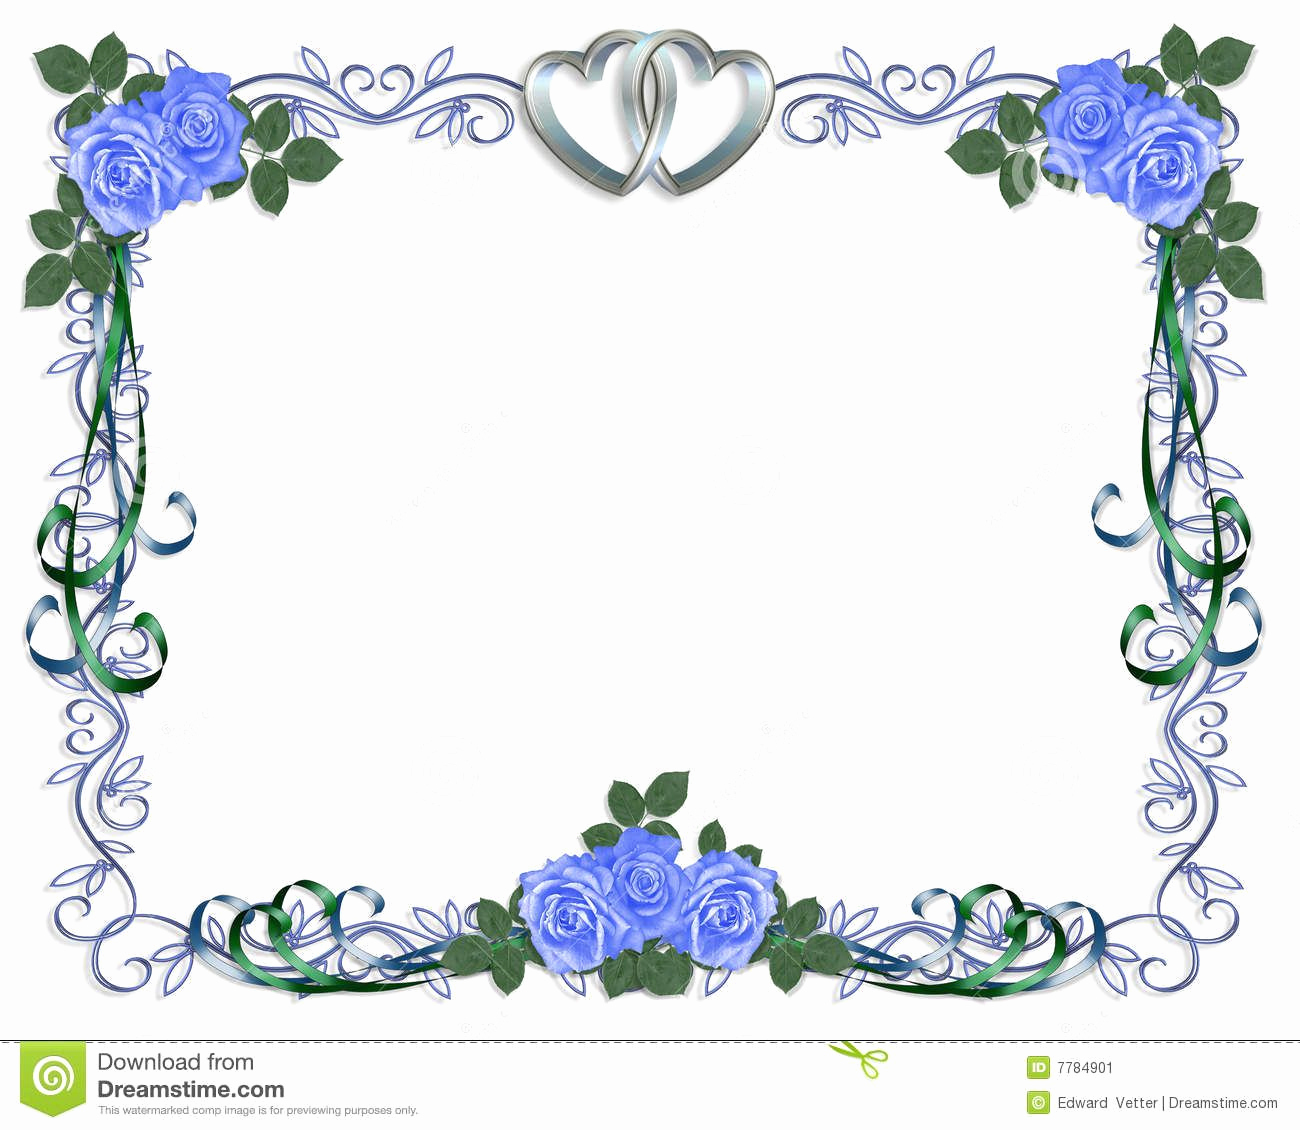 Wedding Invitation Border Design Inspirational Wedding Invitation Blue Roses Border Stock Image Image